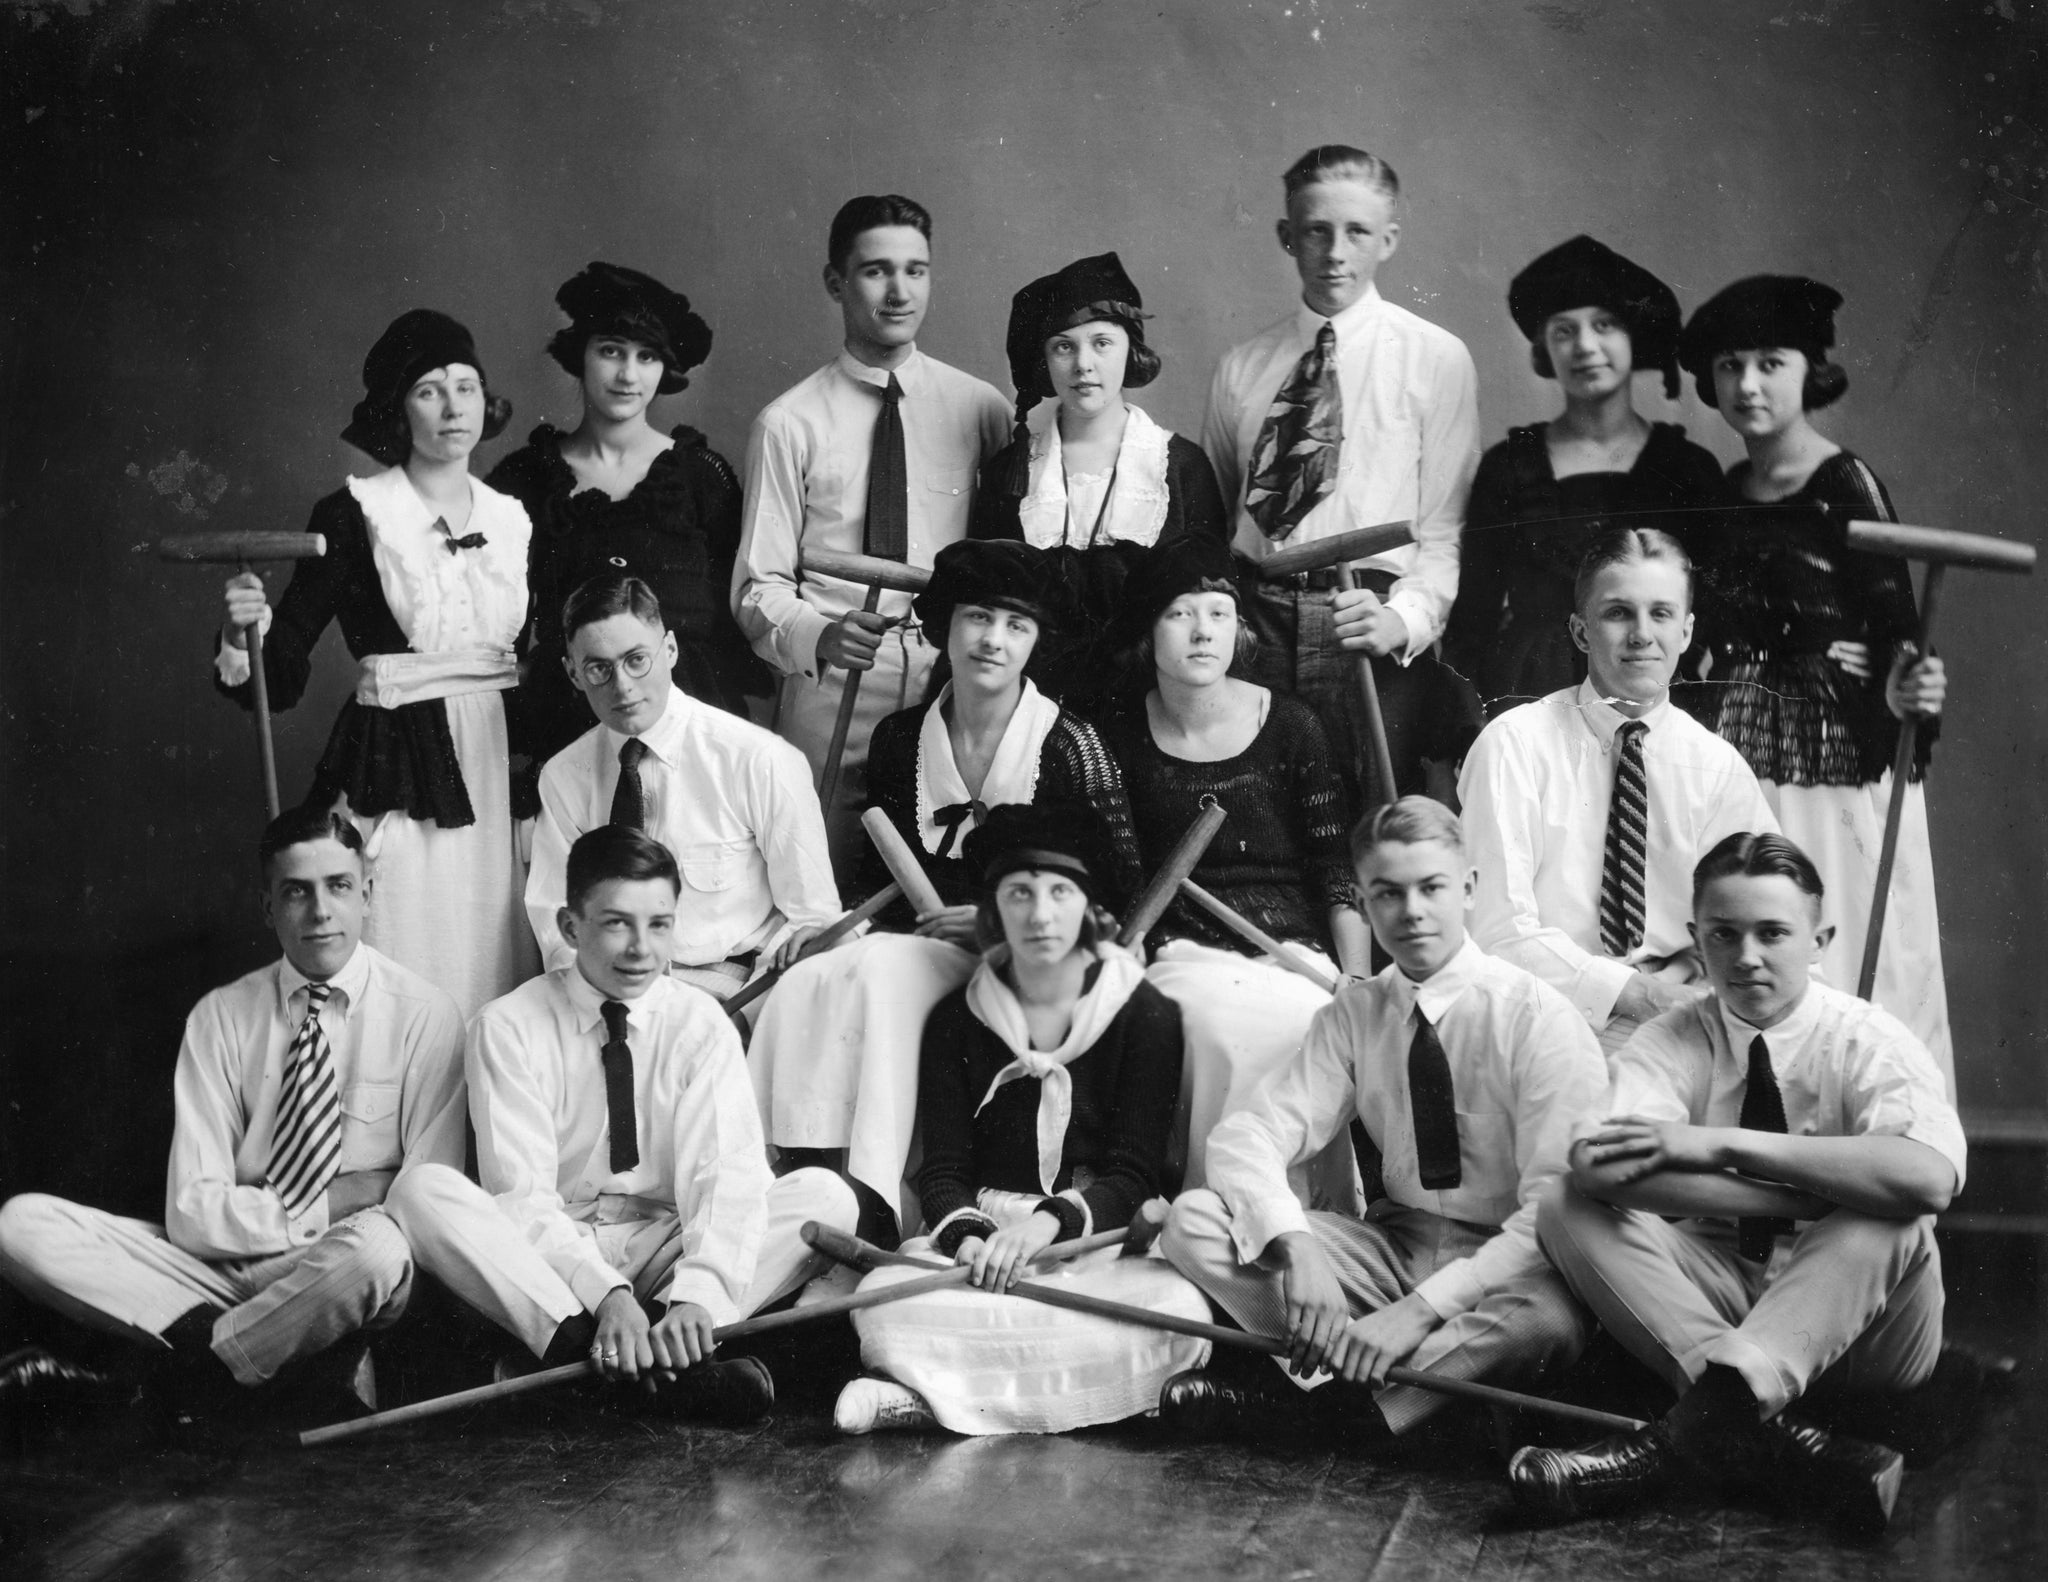 Davenport High School show, circa 1920. Front right is Bix Beiderbecke. His girlfriend, Vera Cox, is back row, second from right. -- Quad-City Times